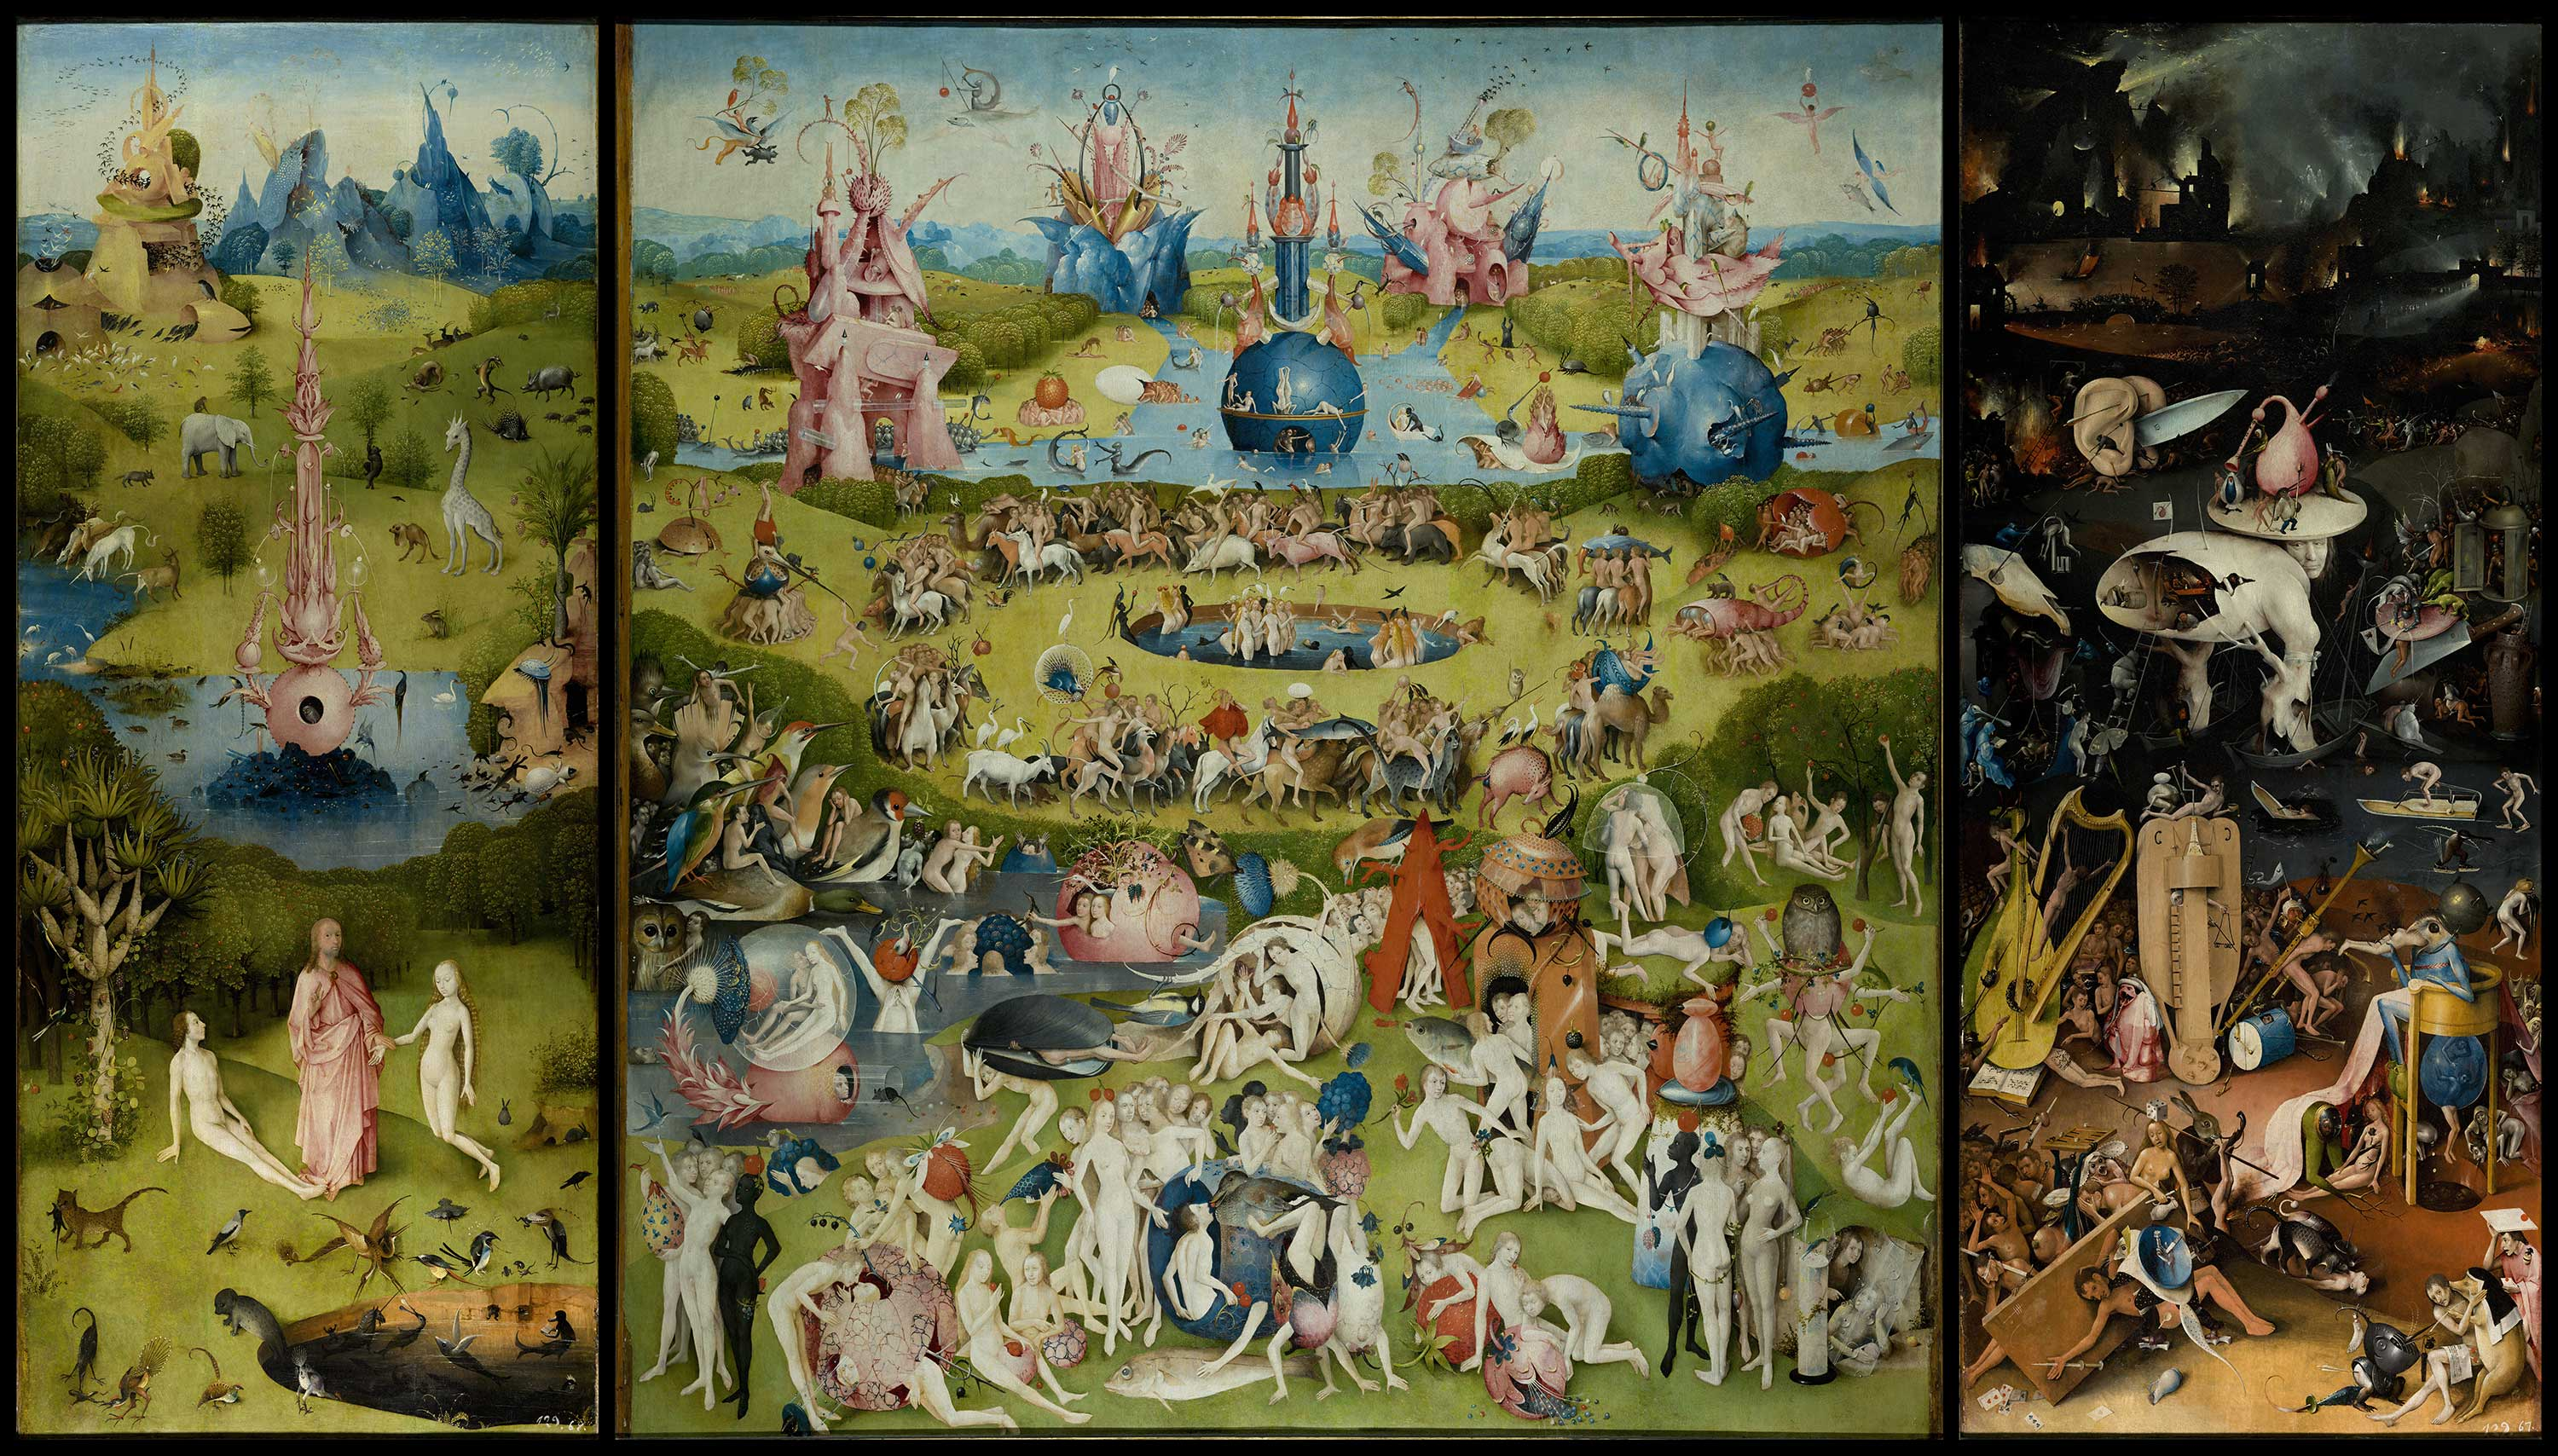 Children's search book - The Garden of Earthly Delights by Hieronymus Bosch